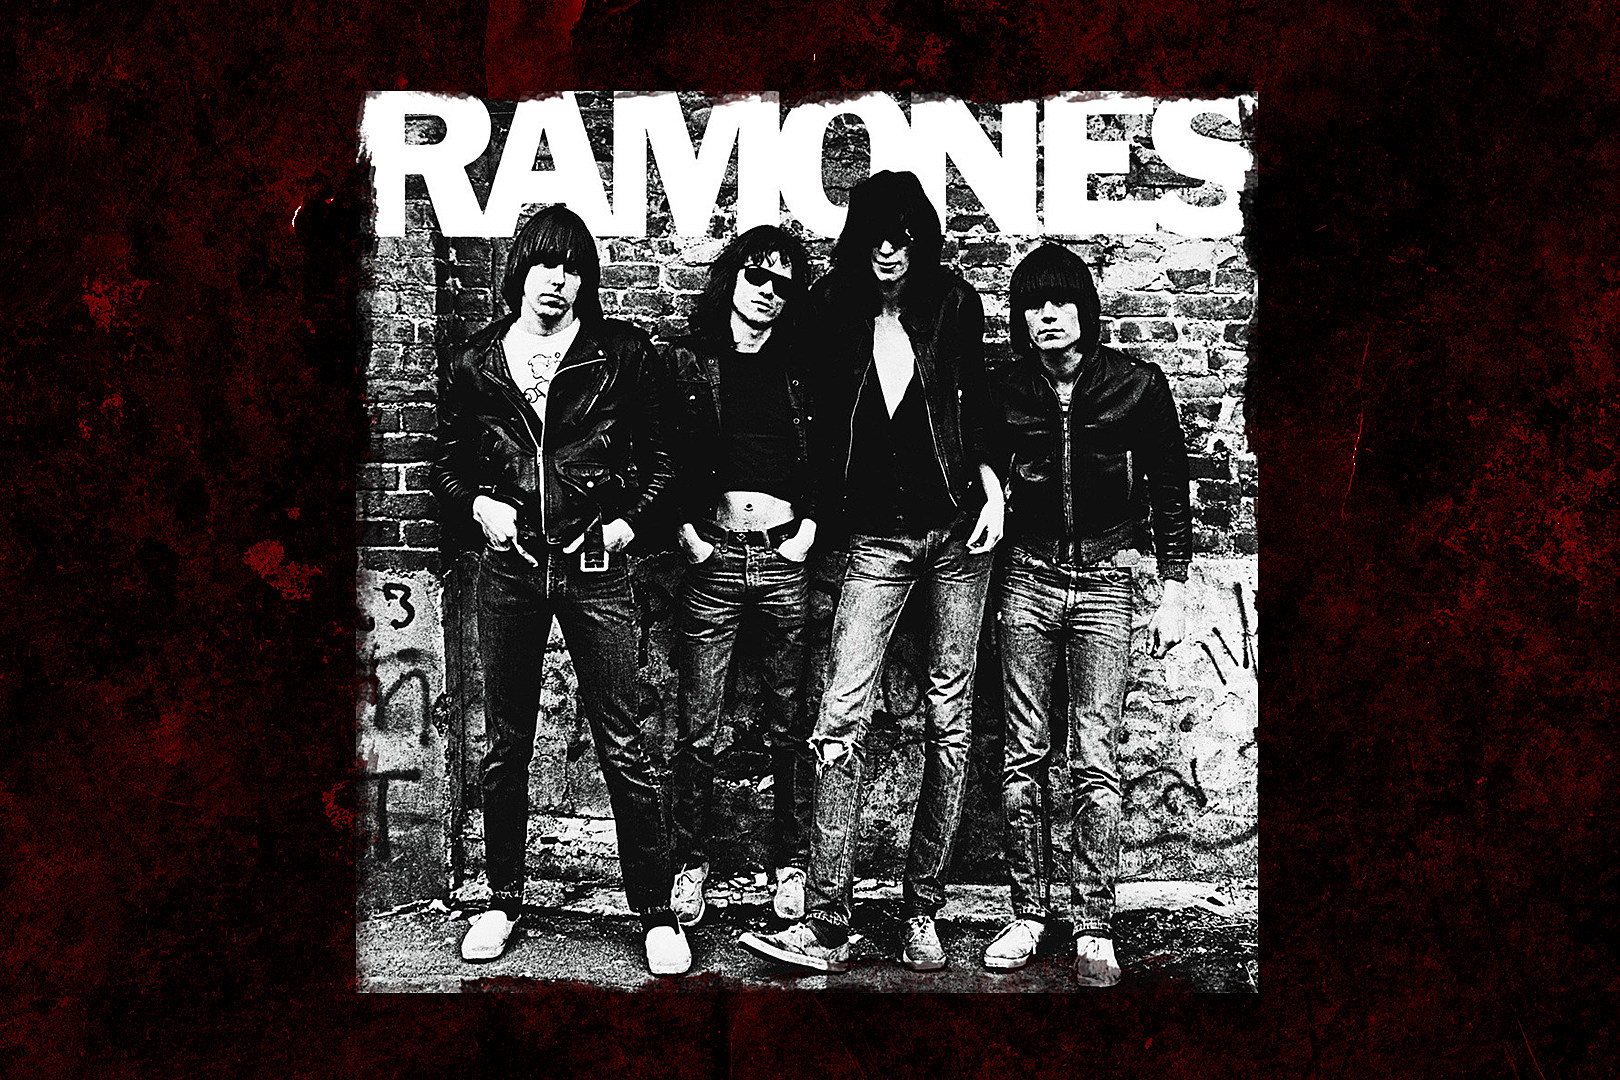 43 Years Ago: Ramones Release Their Self-Titled Debut Album